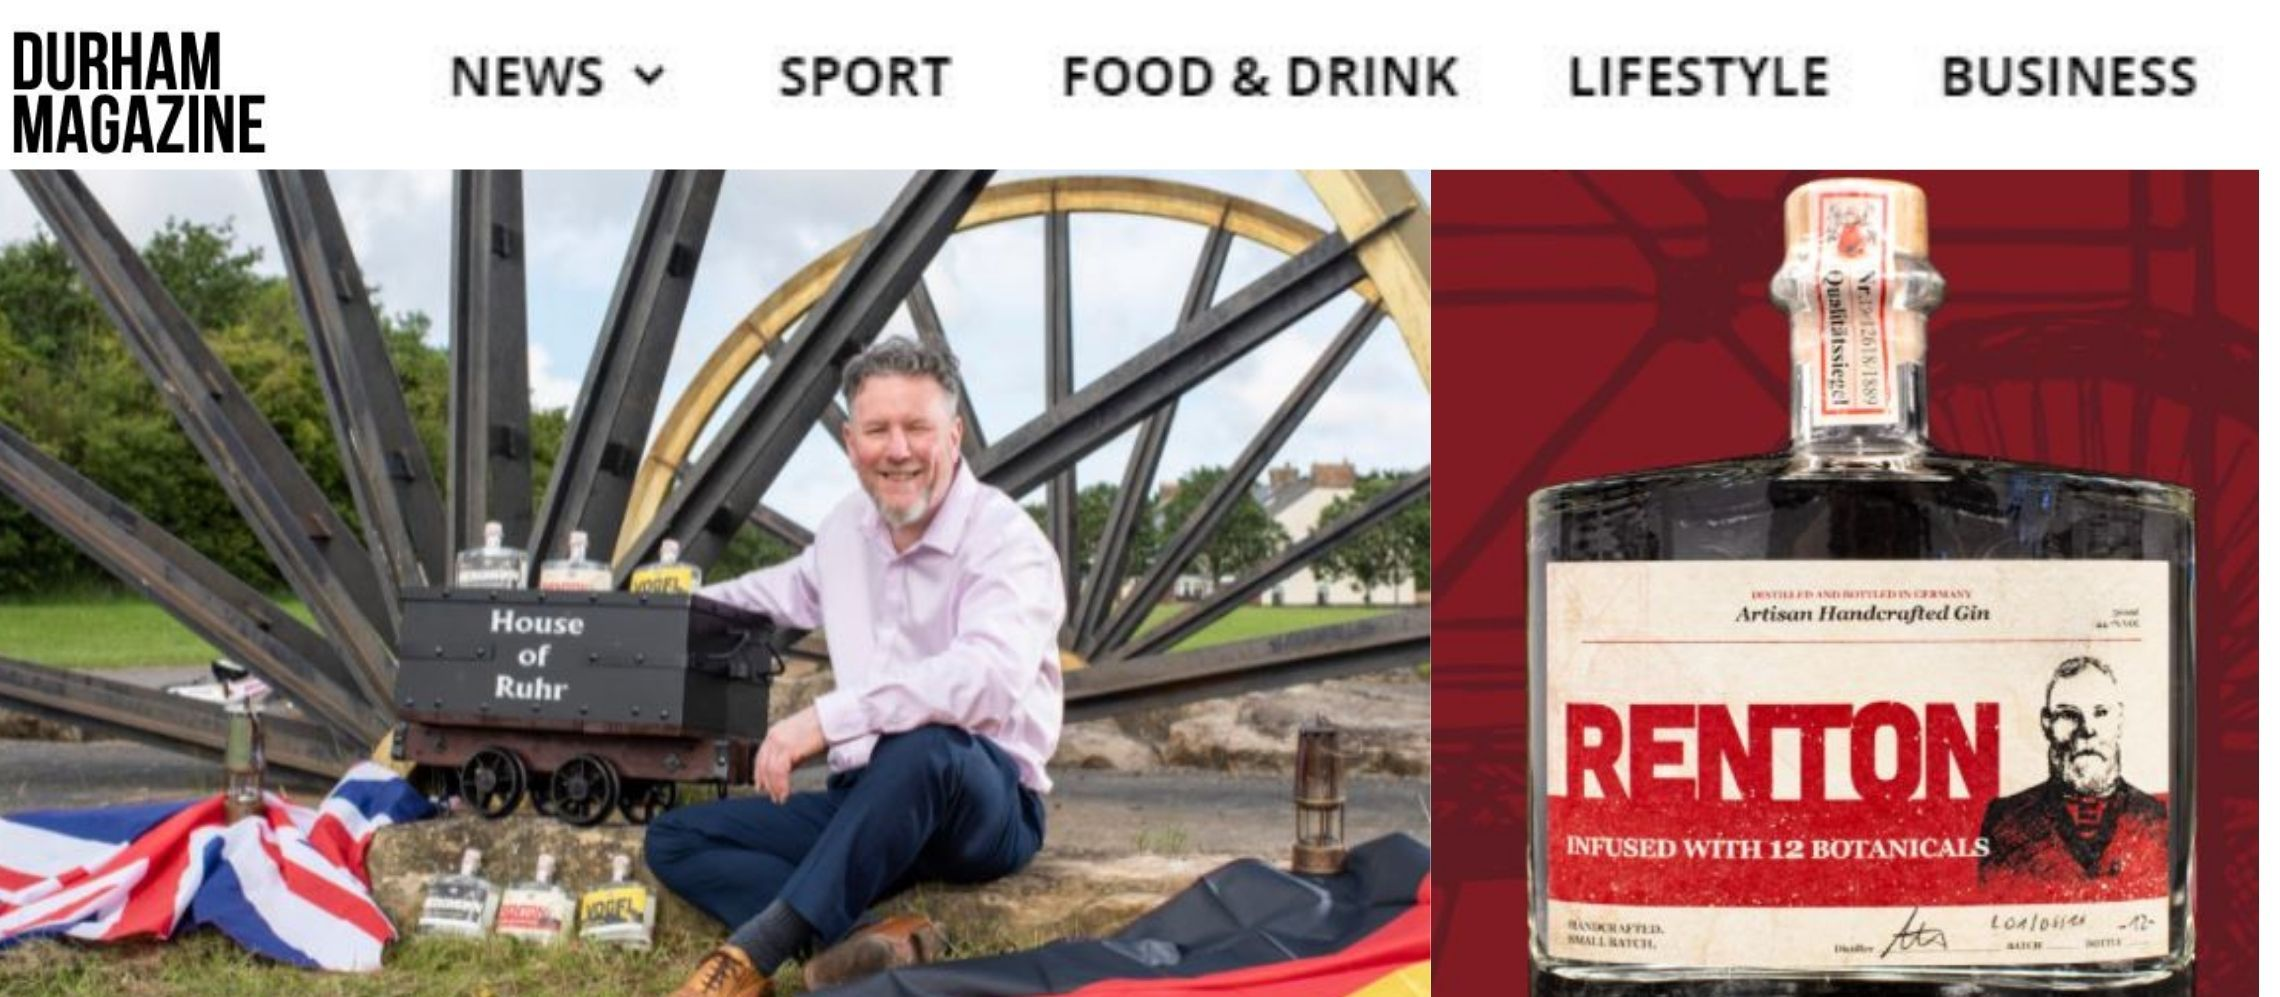 Photo for: House of Ruhr Wins Silver Medal at London Spirits Competition via Durham Magazine PR